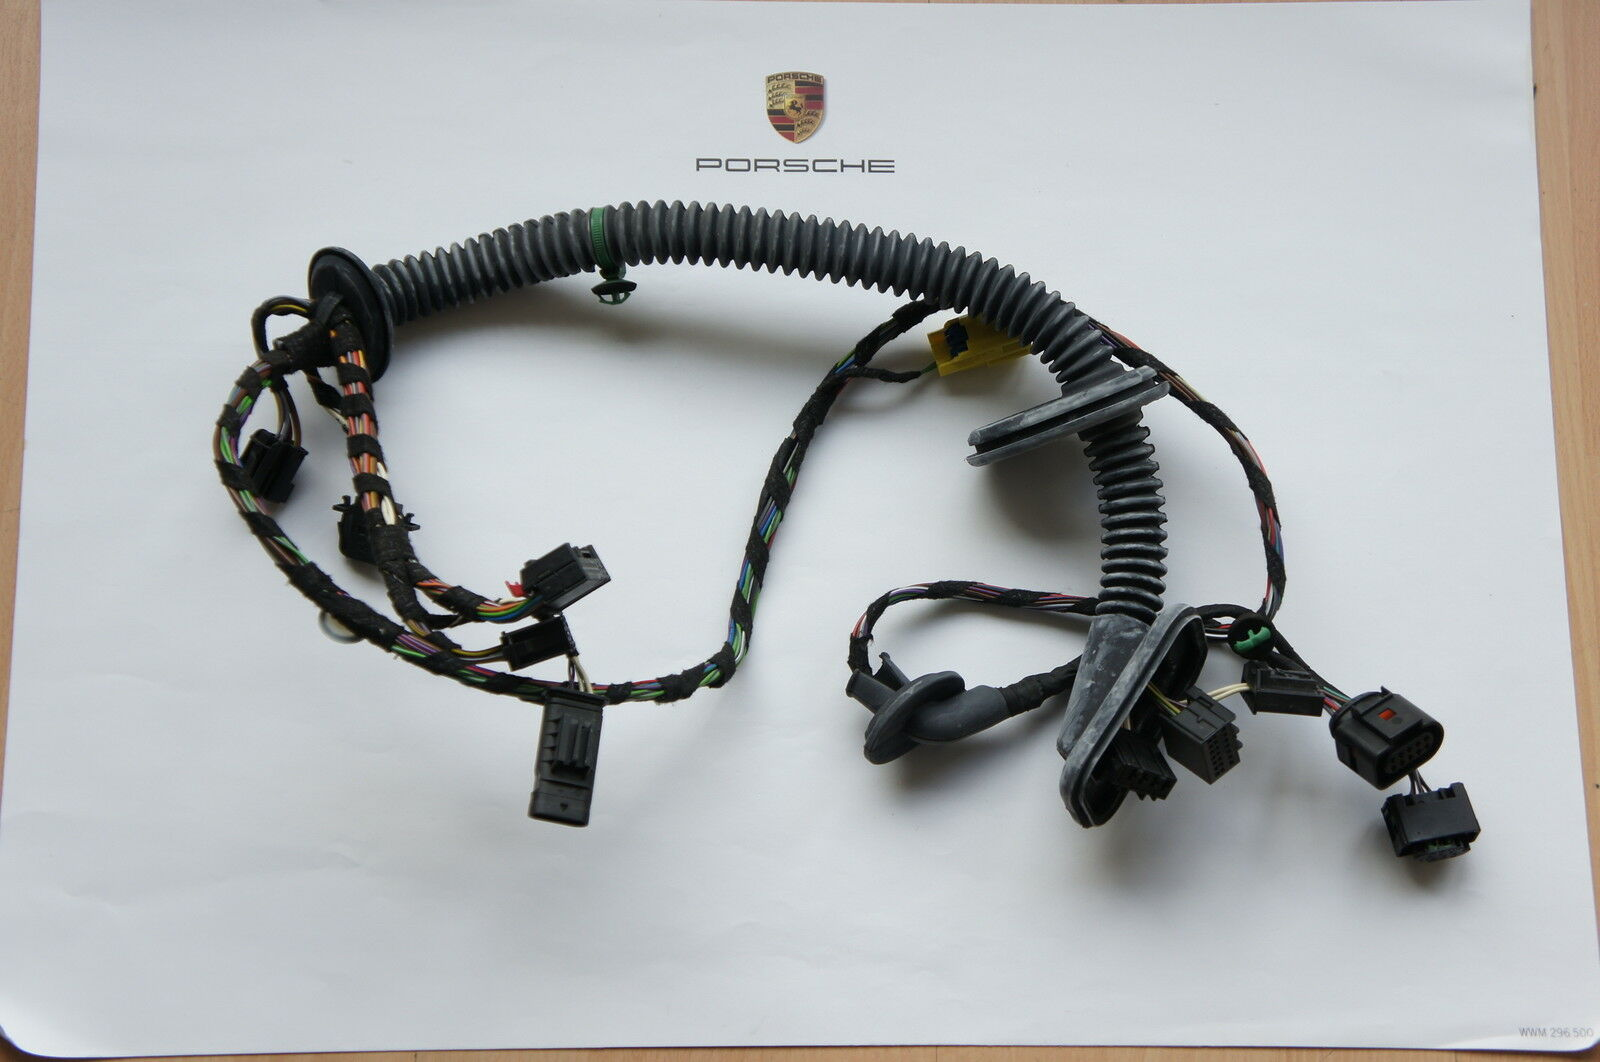 Porsche 970 Panamera Door Wiring Harness Cable Loom Front Left 1 Of 1only Available